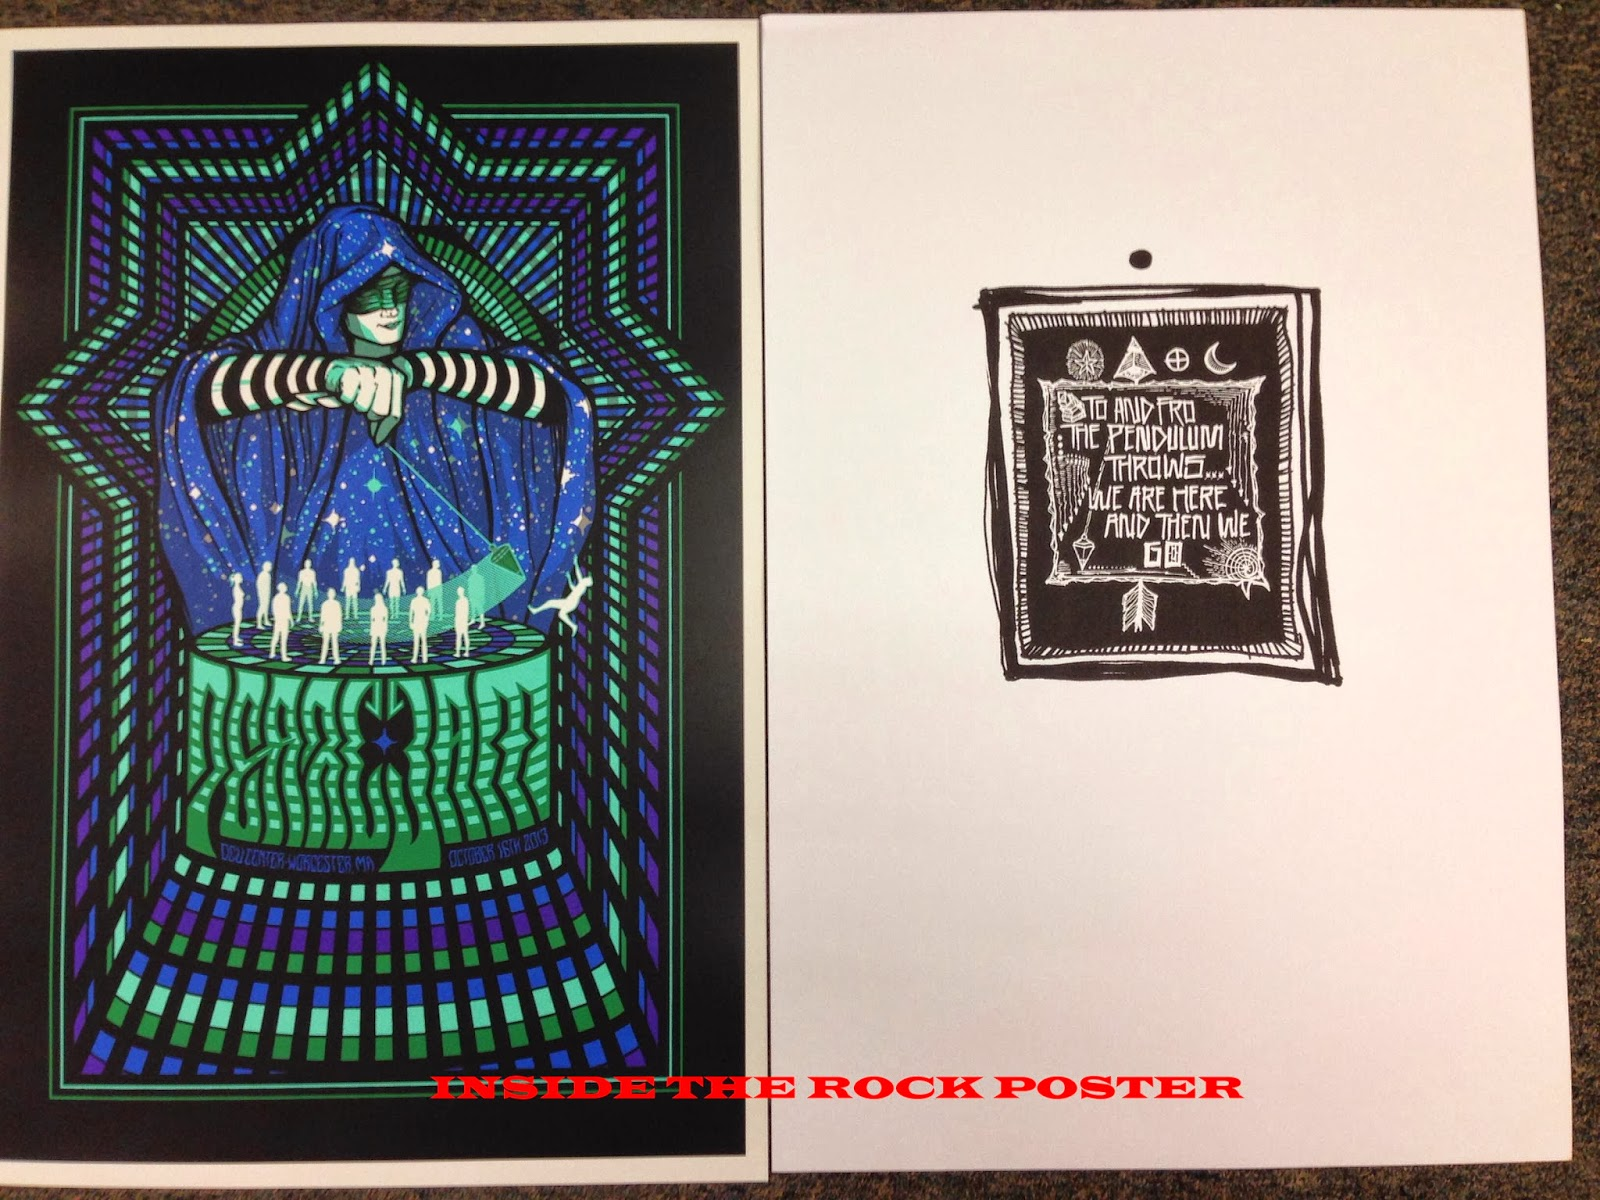 2014 Zeb Love Poster Print Shrine Auditorium Los Angeles Bright The Avett Brothers Art